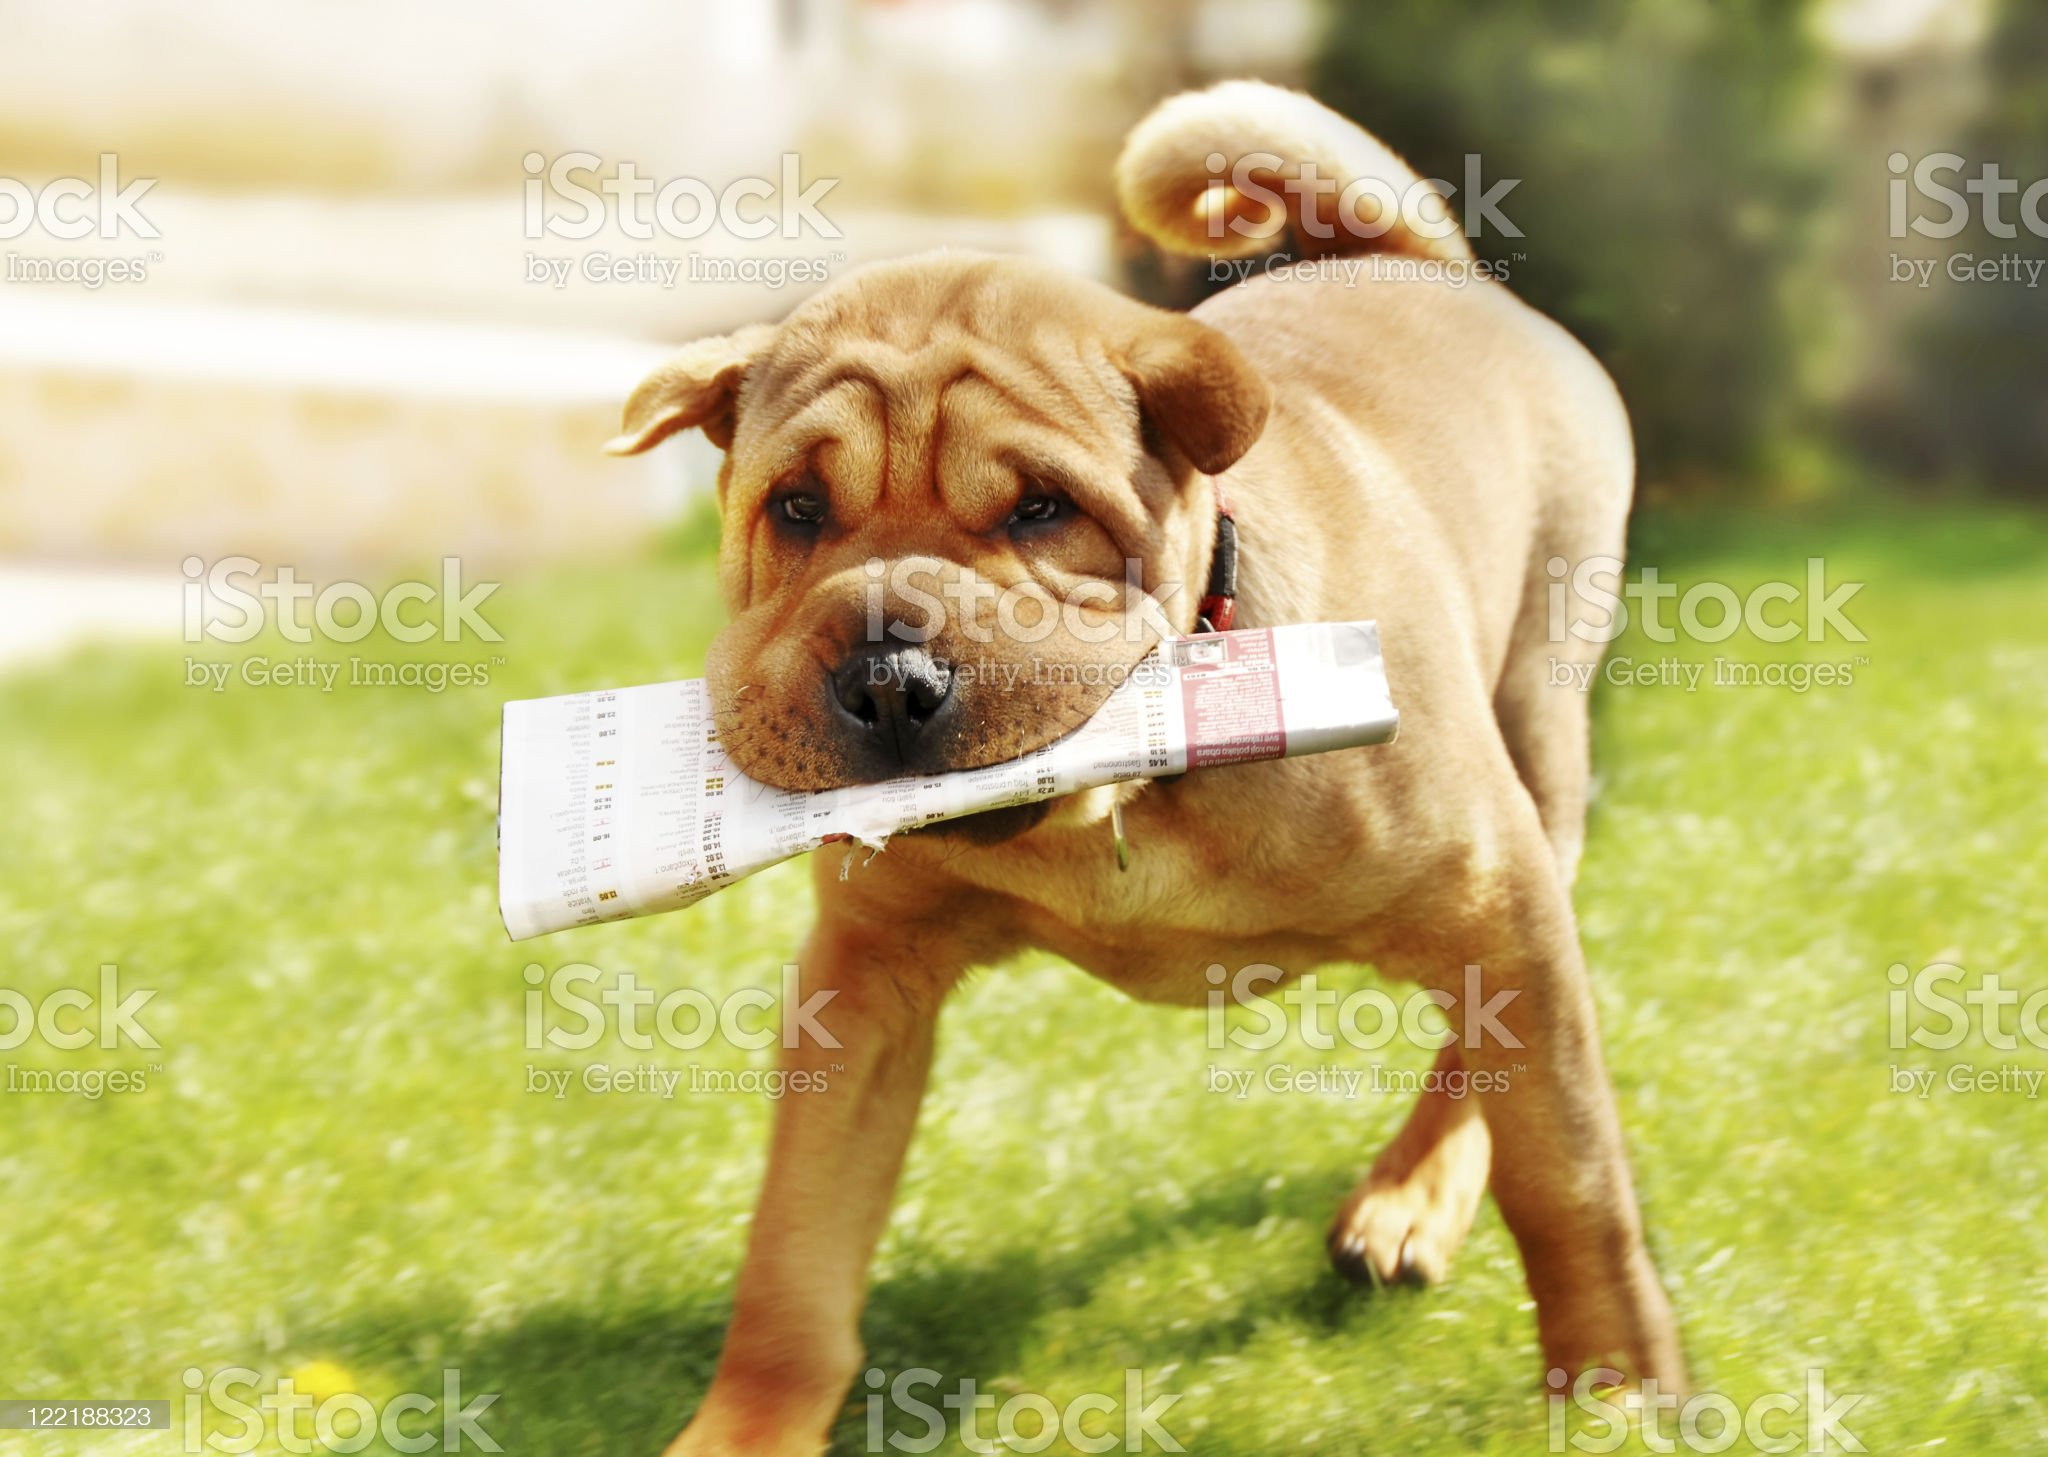 Shar Pei dog with newspapers royalty-free stock photo